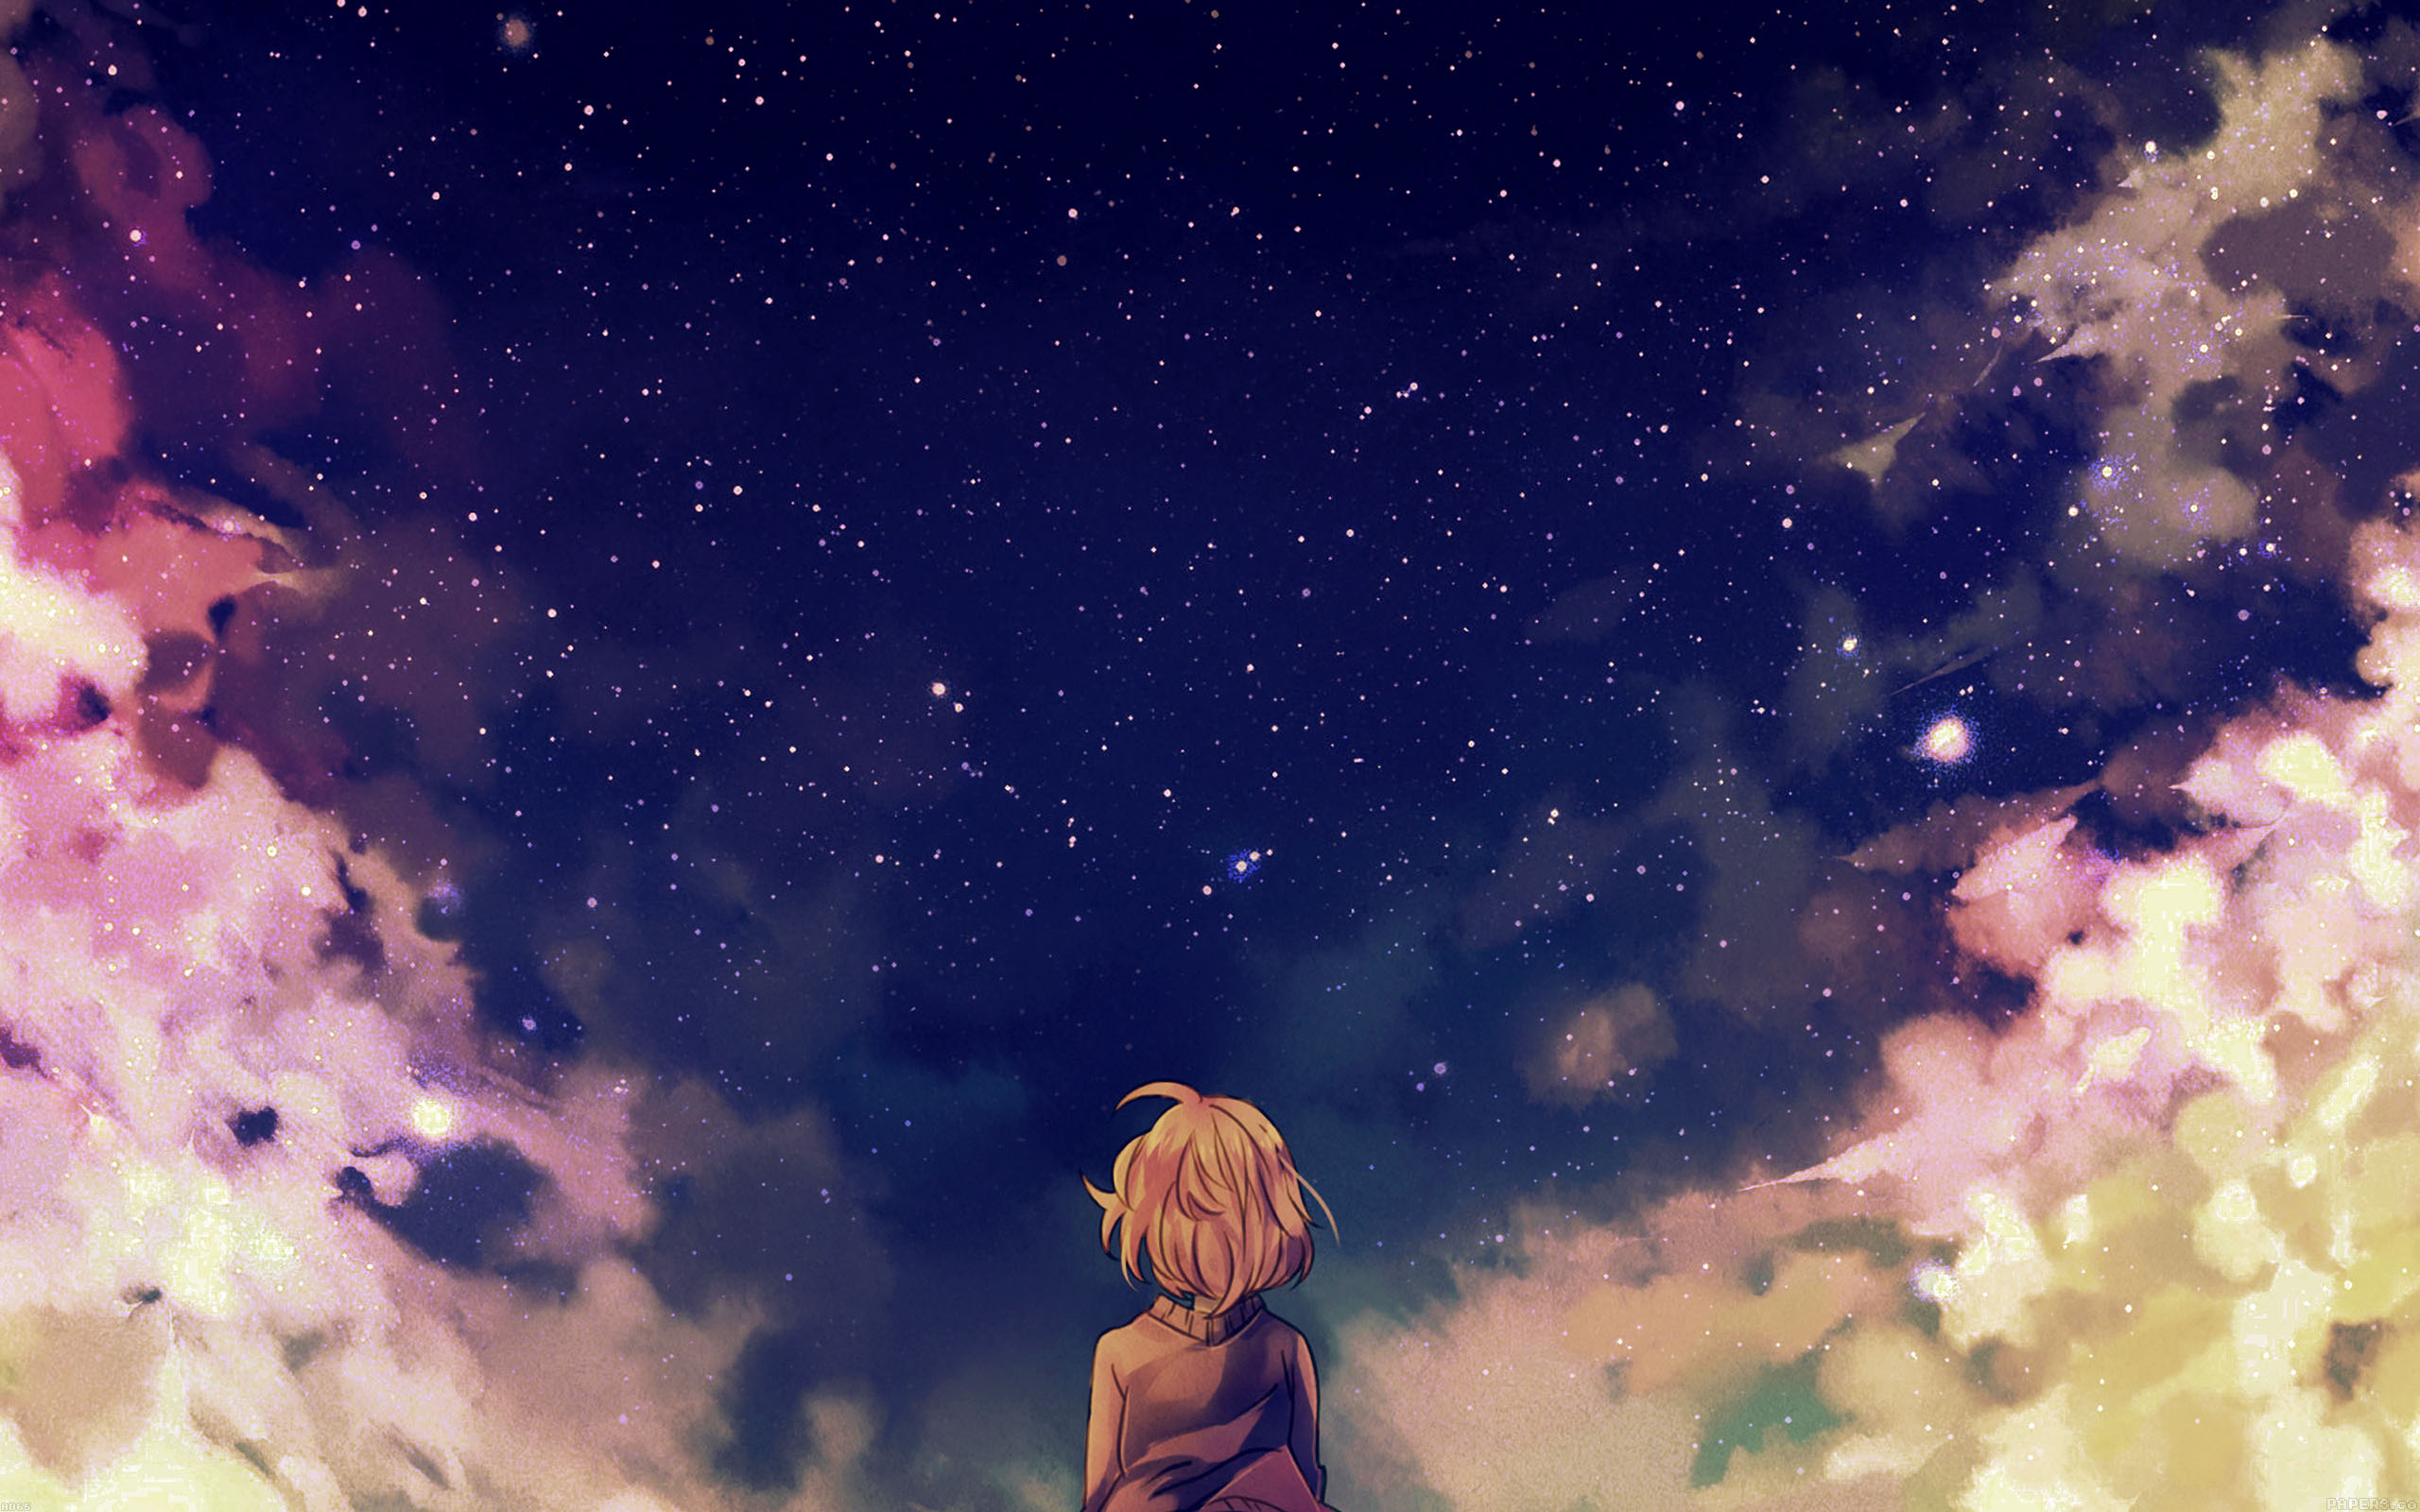 Cute Disney Ipad Wallpaper Ad65 Starry Space Illust Anime Girl Wallpaper